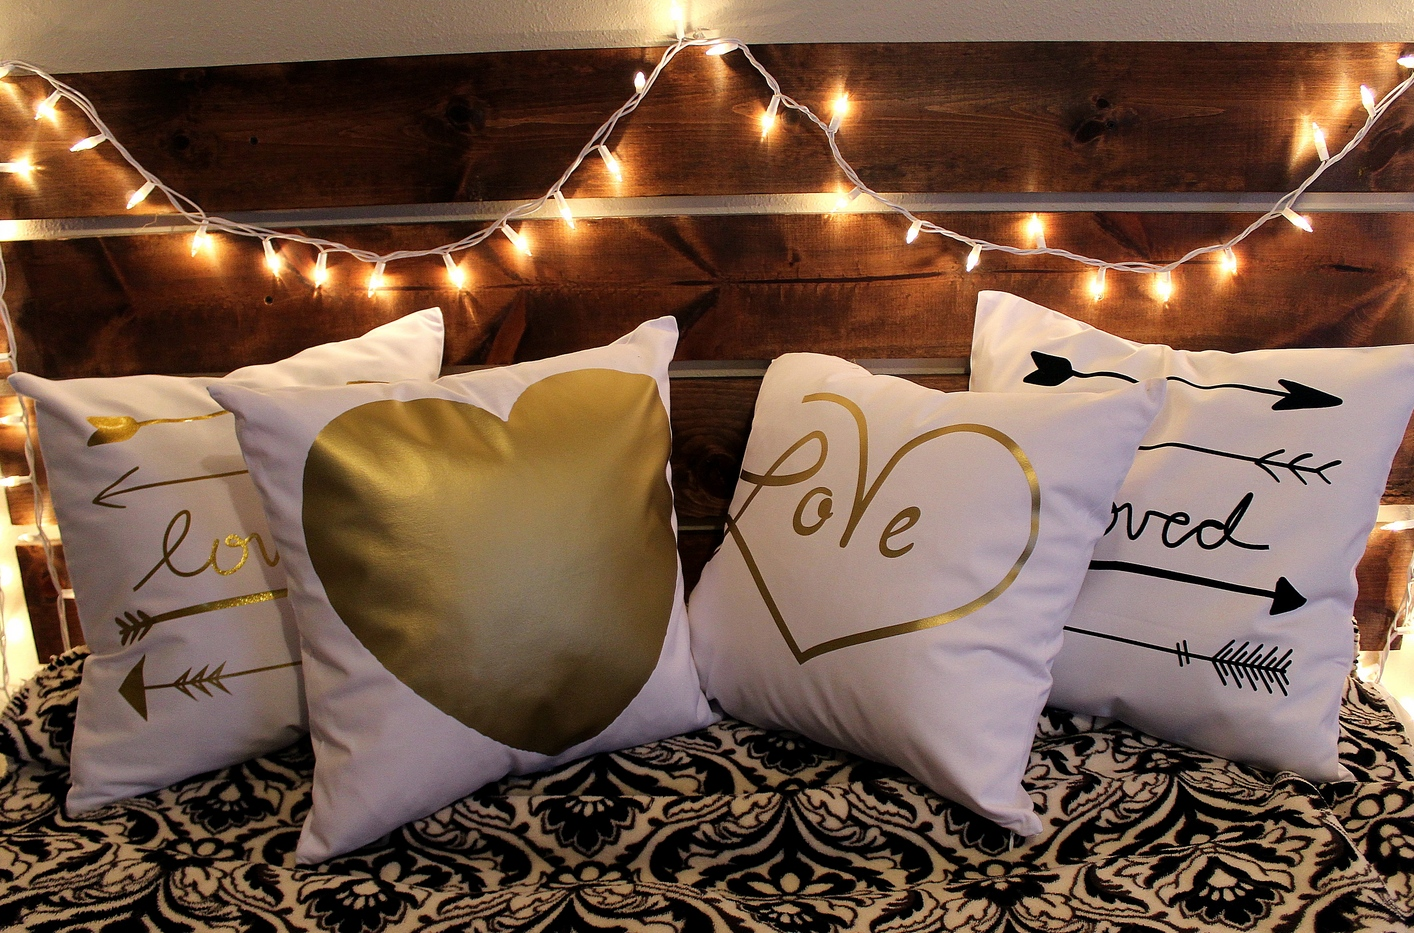 foil case printing pillows pillow cushion bed throw itm cover decorative sofa novelty gold